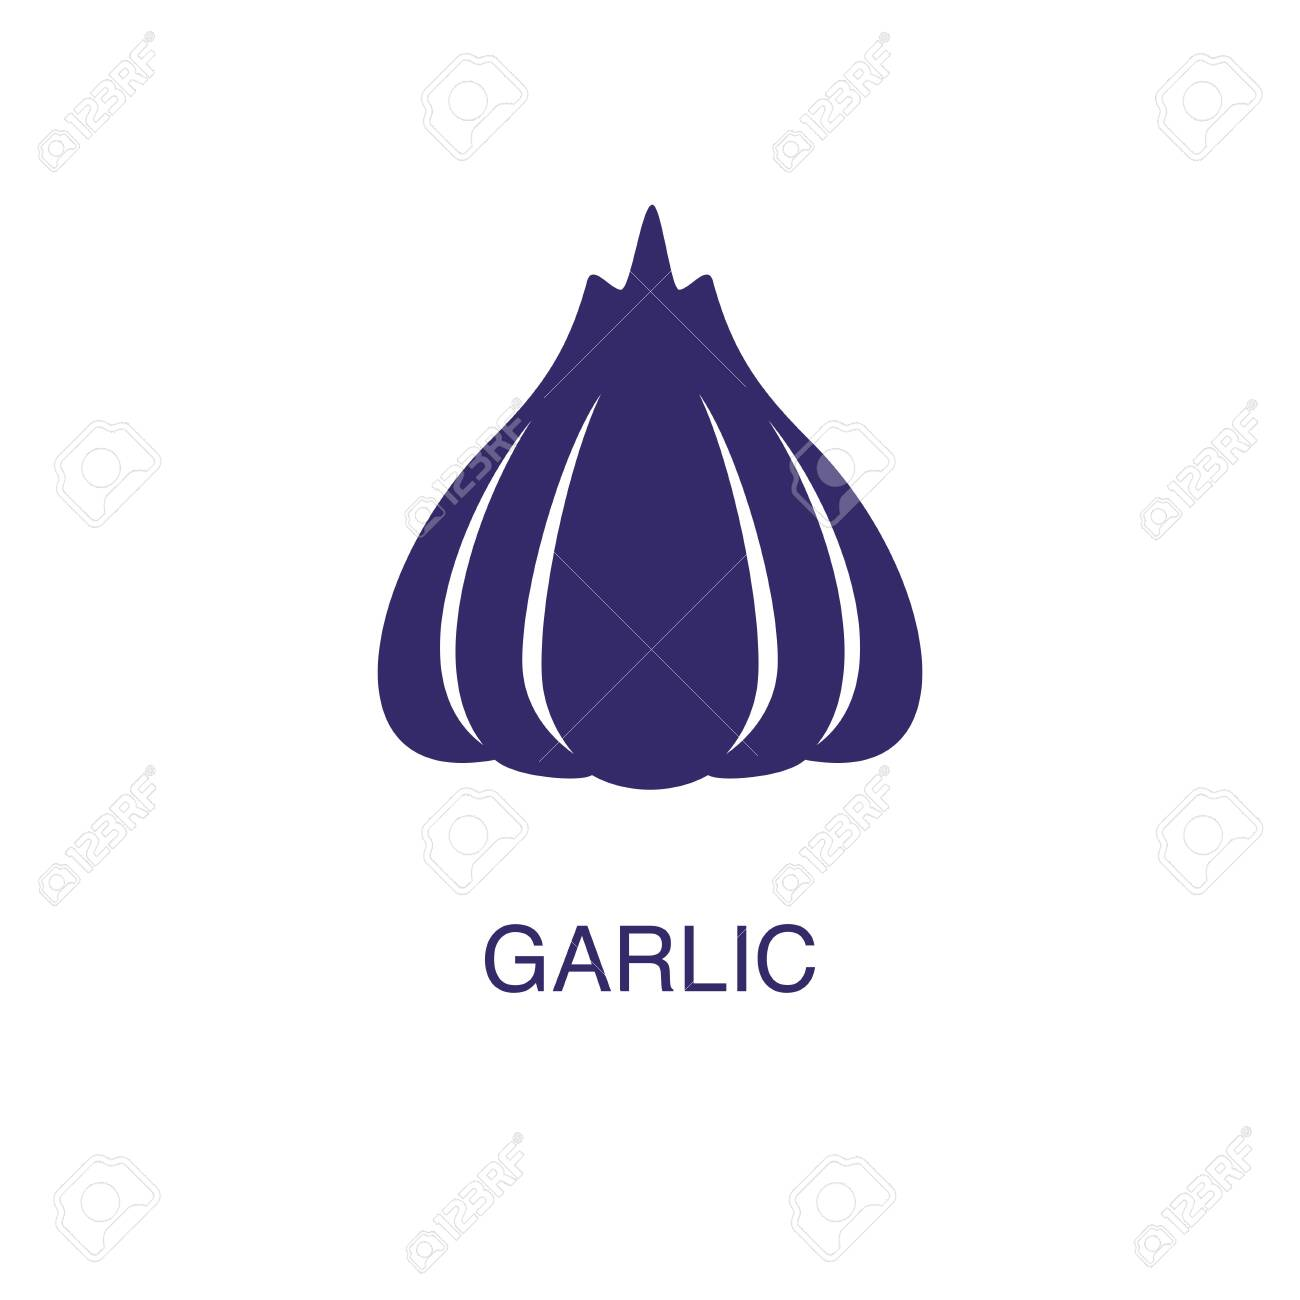 Garlic element in flat simple style on white background. Garlic icon, with text name concept template - 134450456